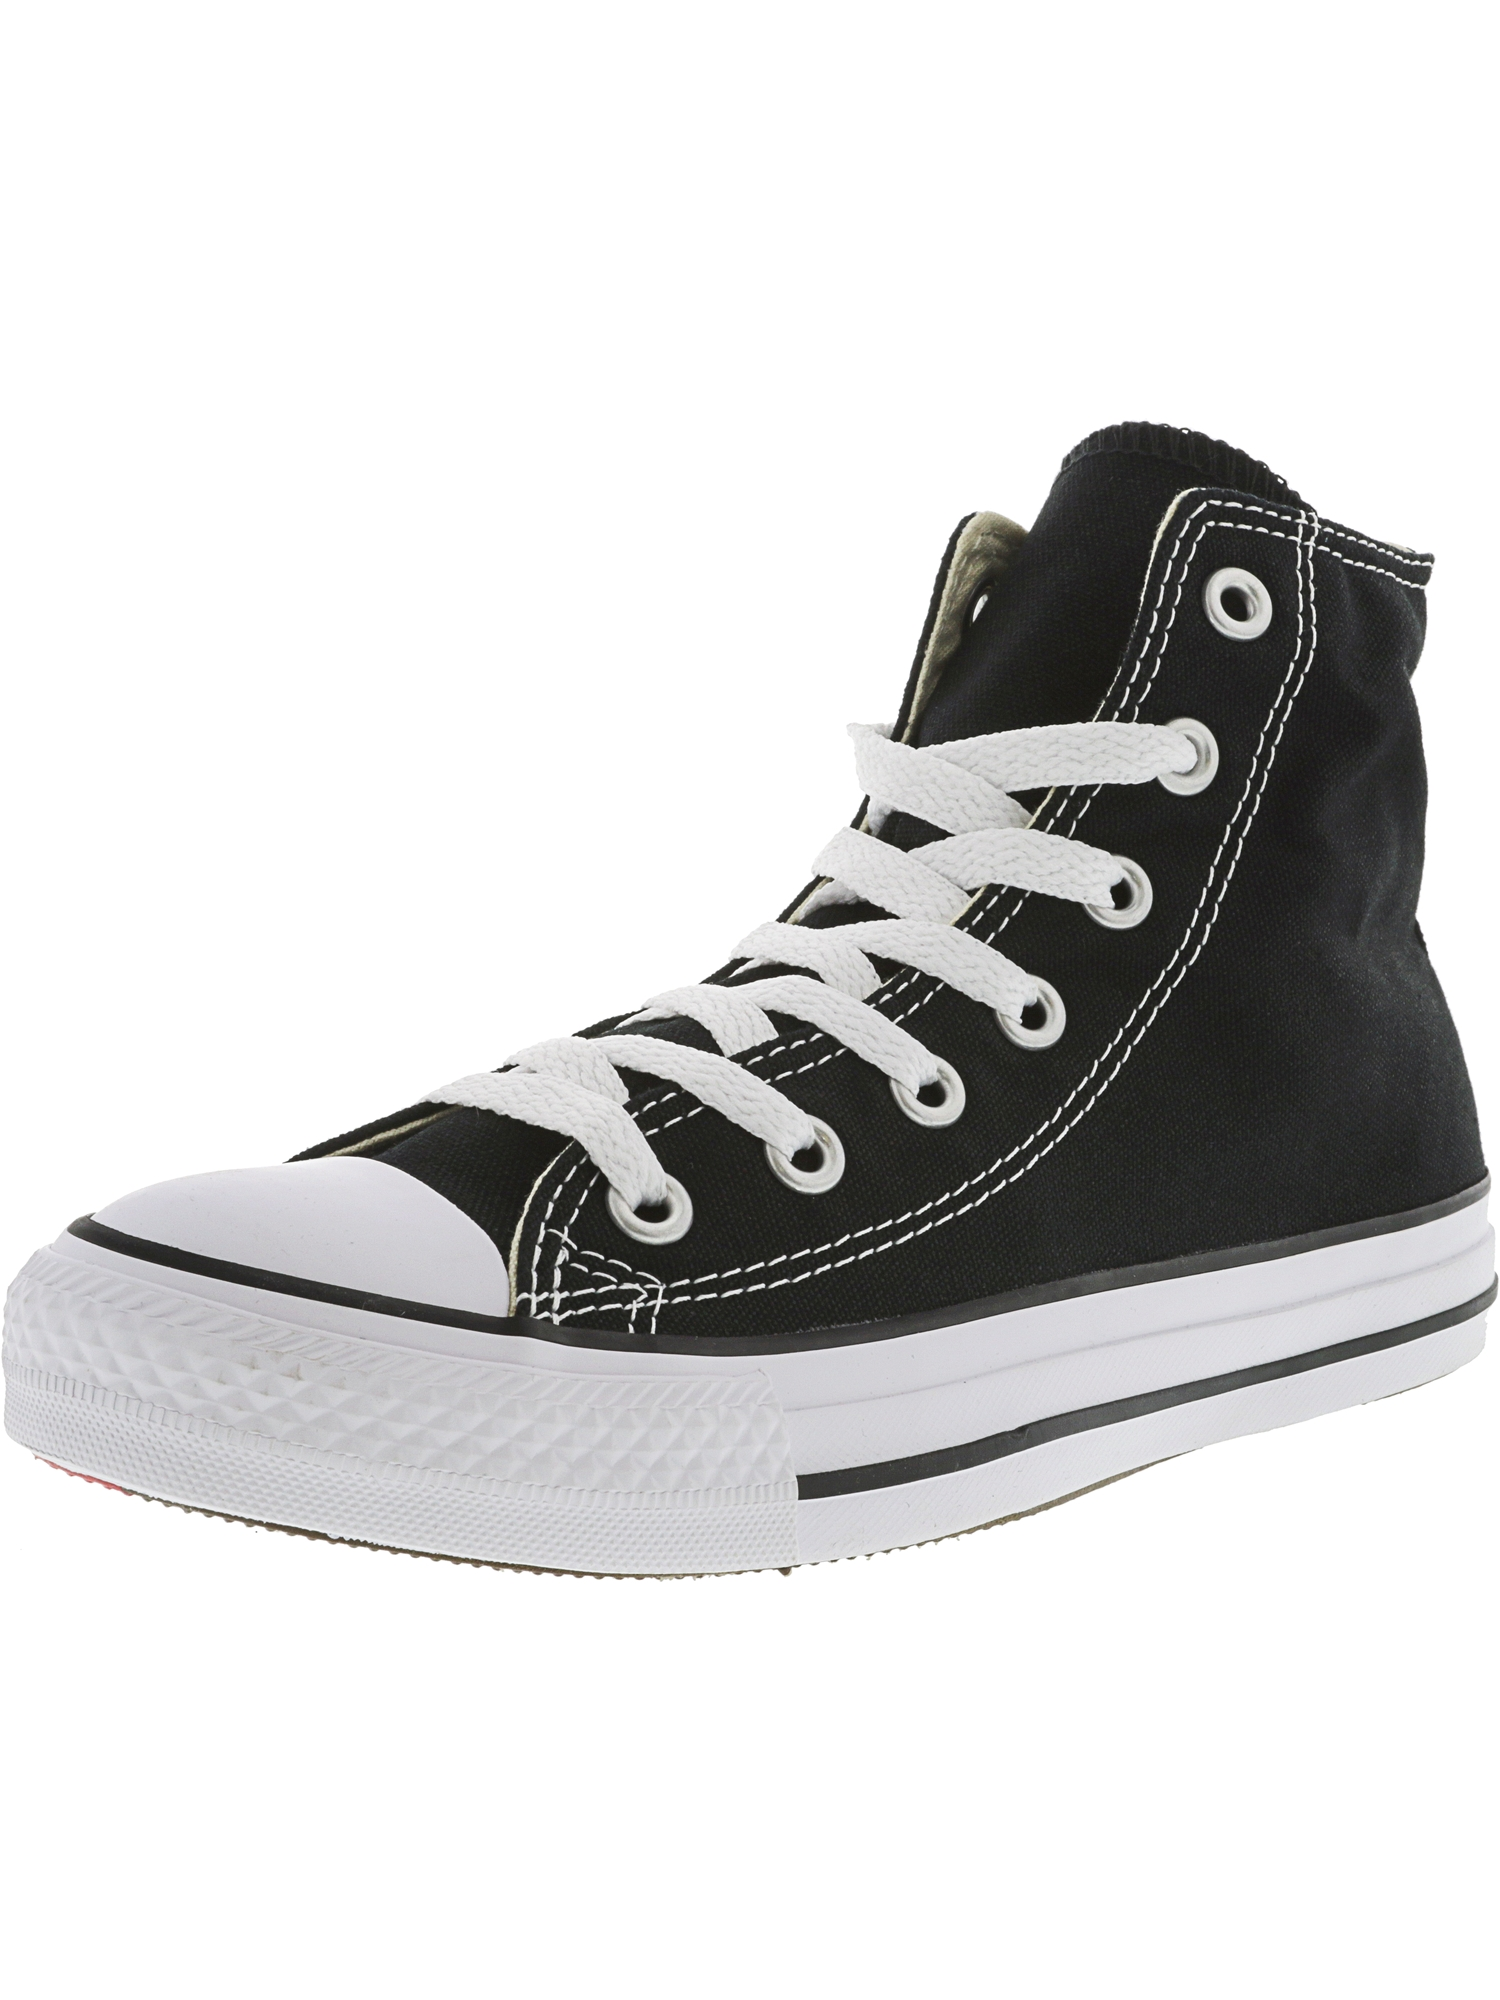 Converse Chuck Taylor All Star High Black Mono High-Top Canvas Fashion Sneaker 6M   4M by Converse